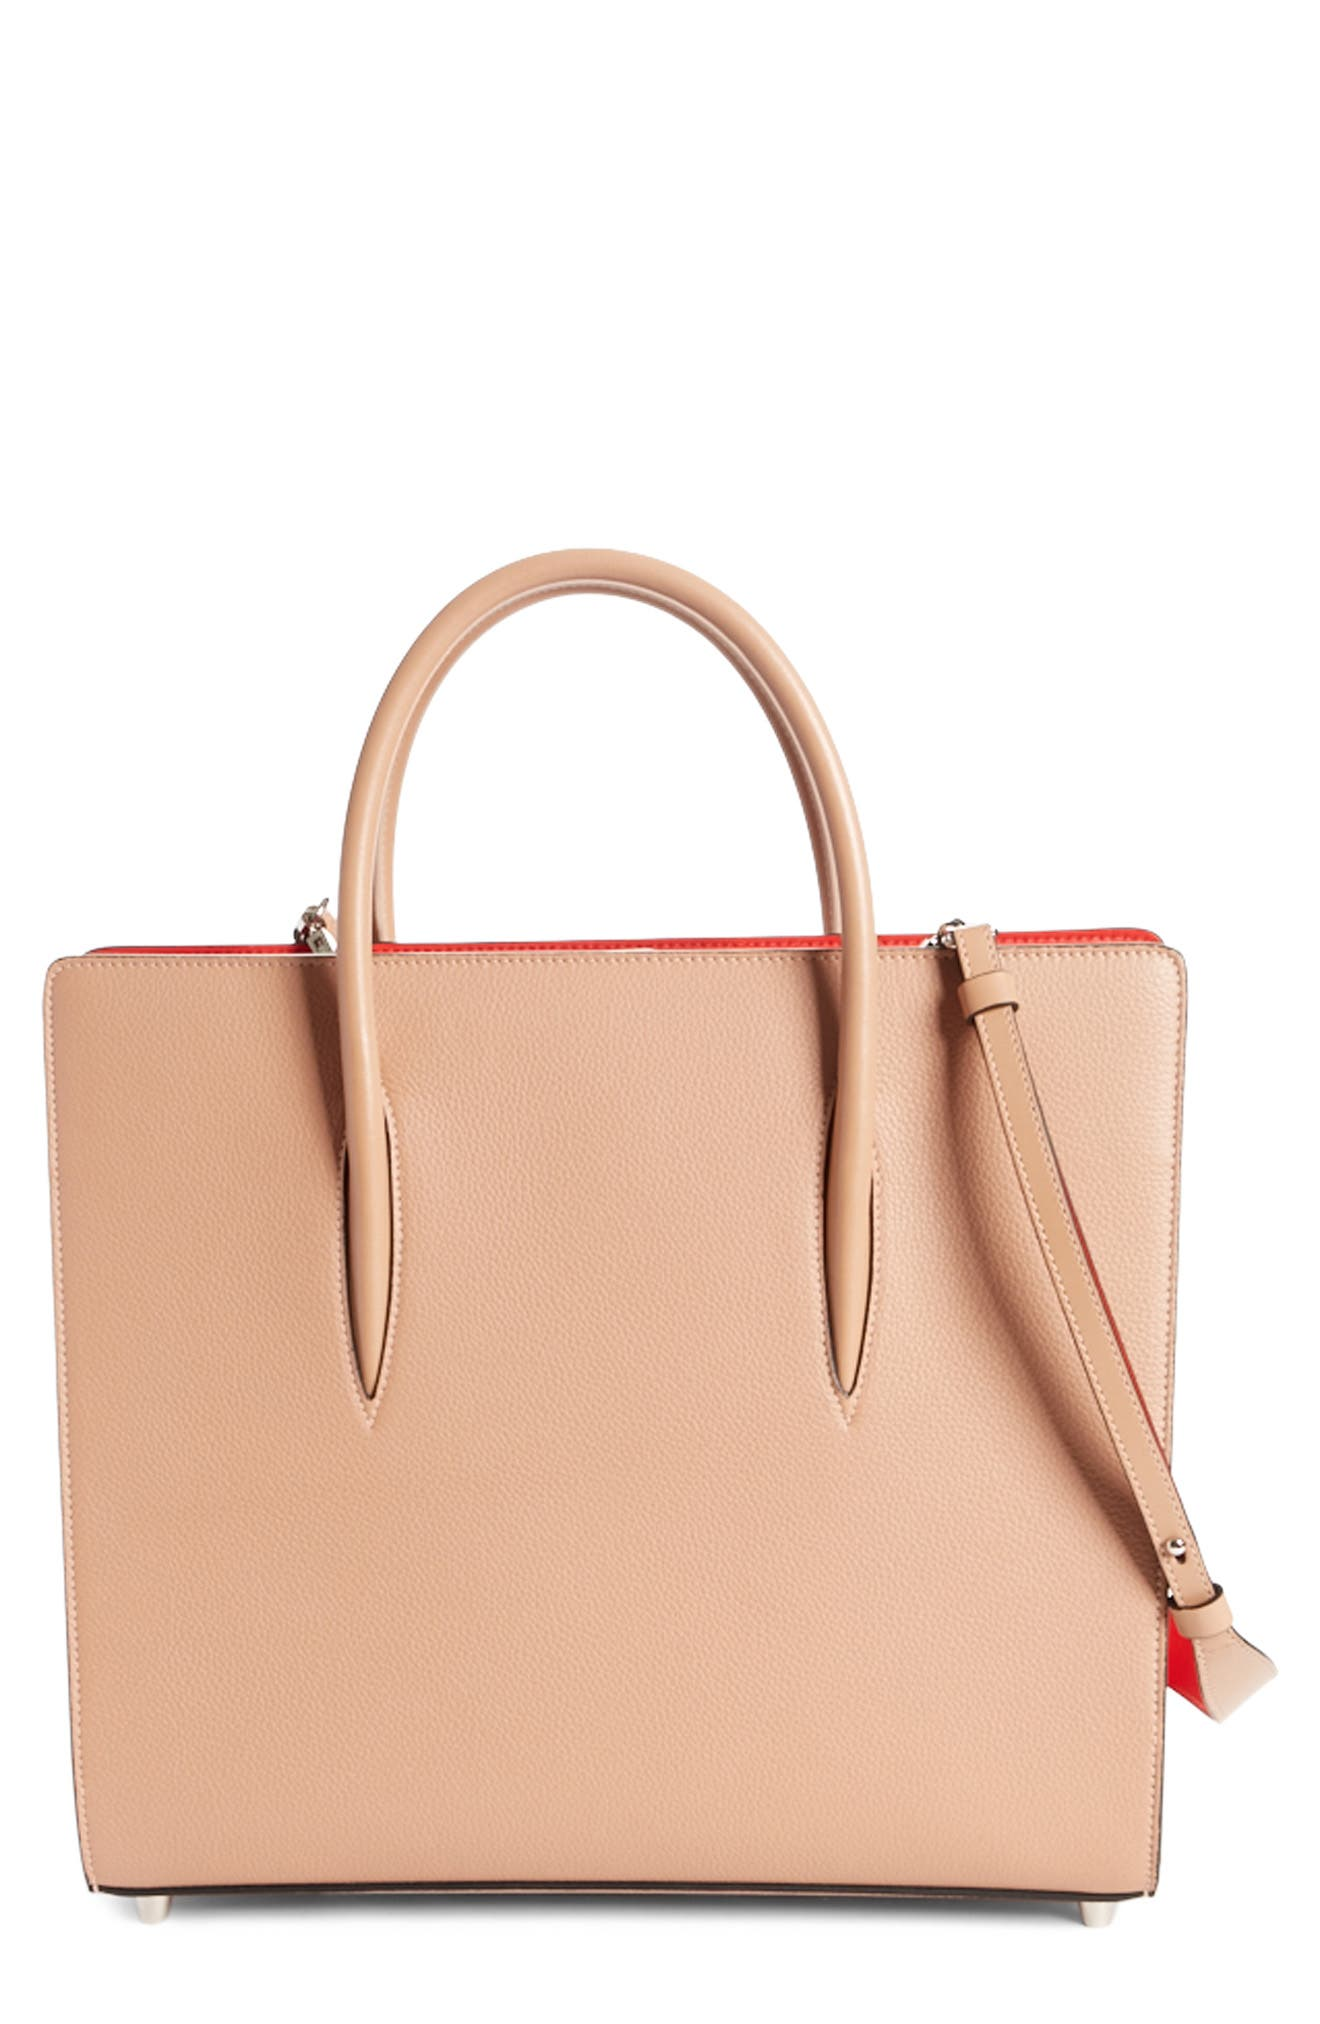 Large Paloma Leather Tote,                         Main,                         color, Nude/ Nude